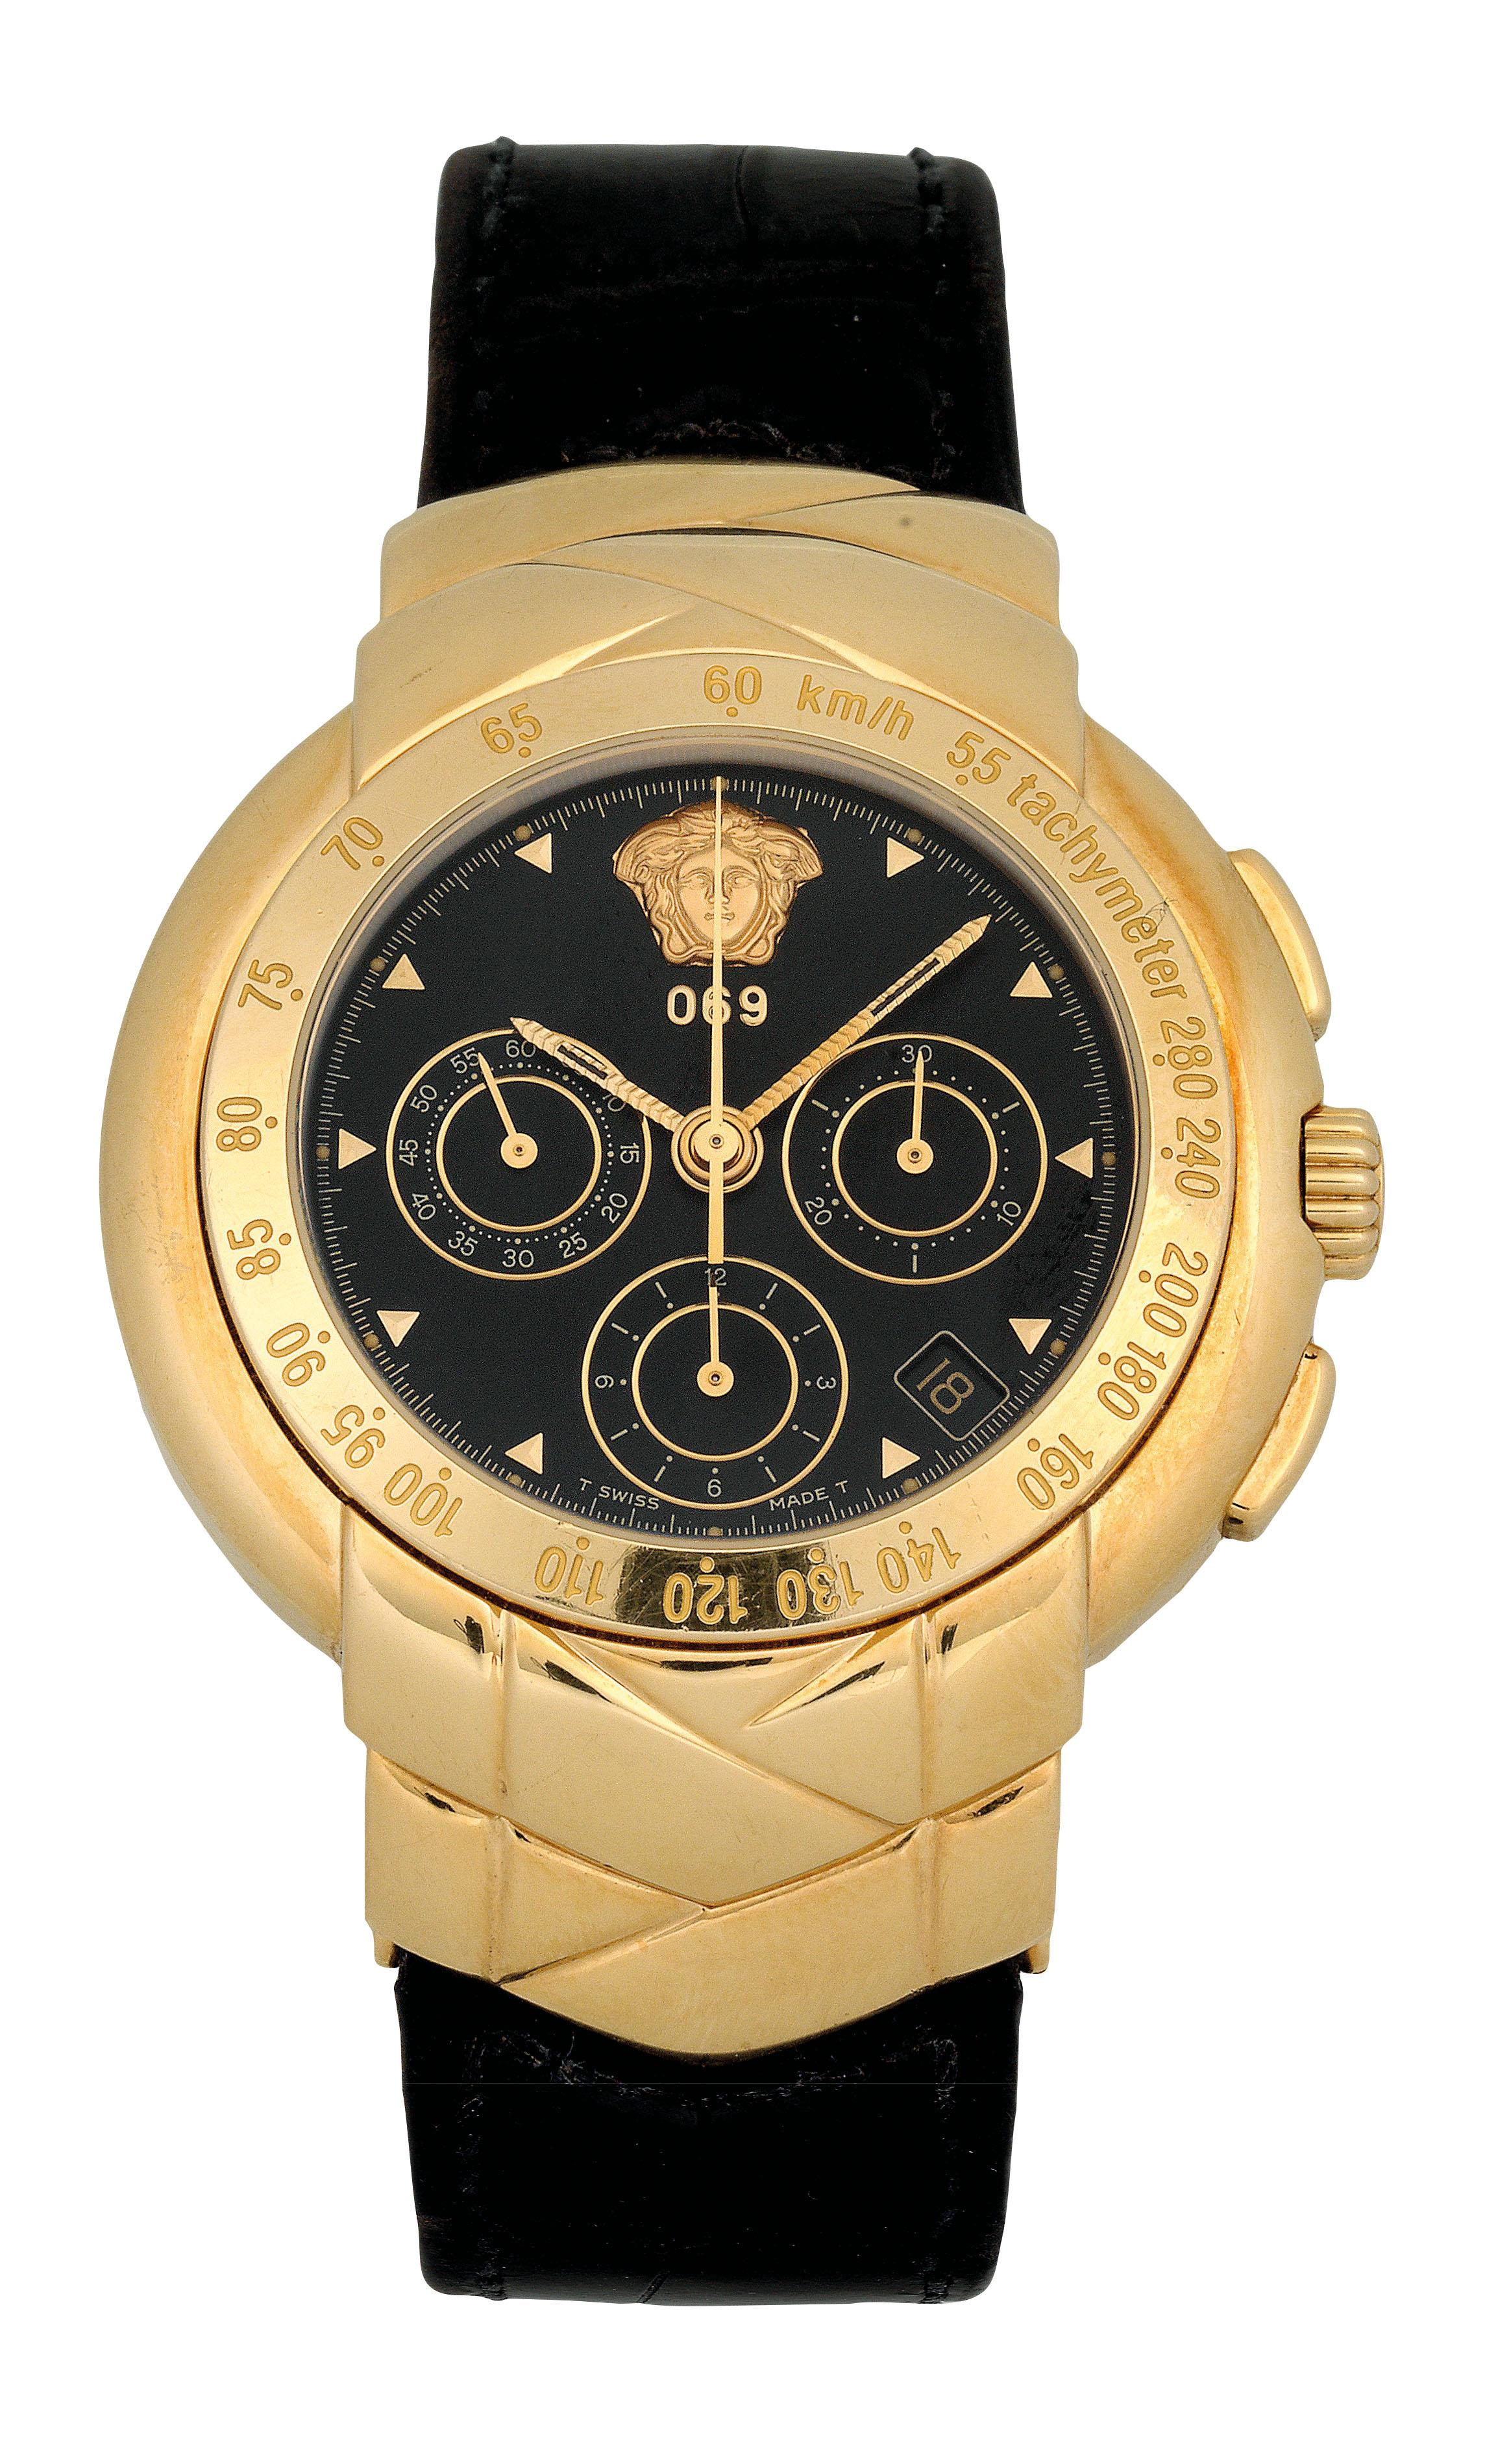 d971b0aa5d4e8 Versace - Wrist and Pocket Watches 2018 05 18 - Realized price  EUR ...